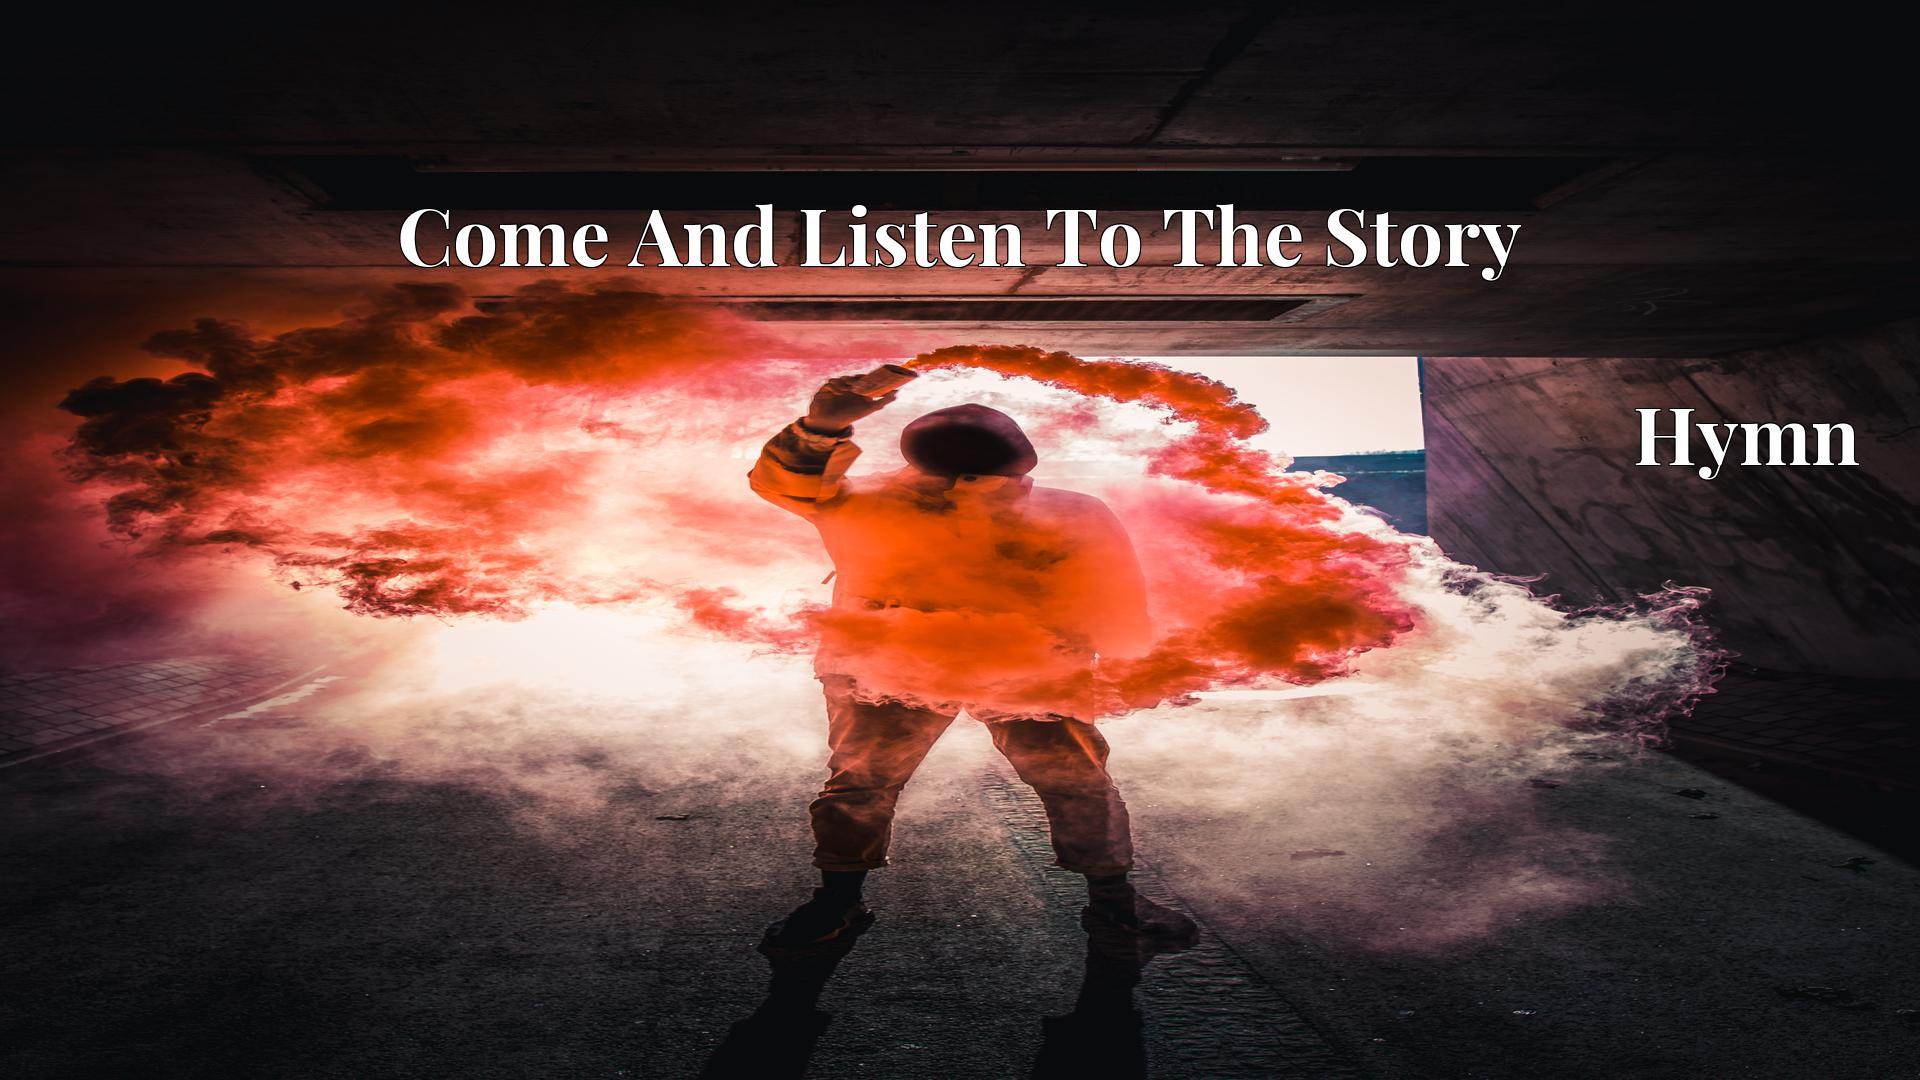 Come And Listen To The Story - Hymn